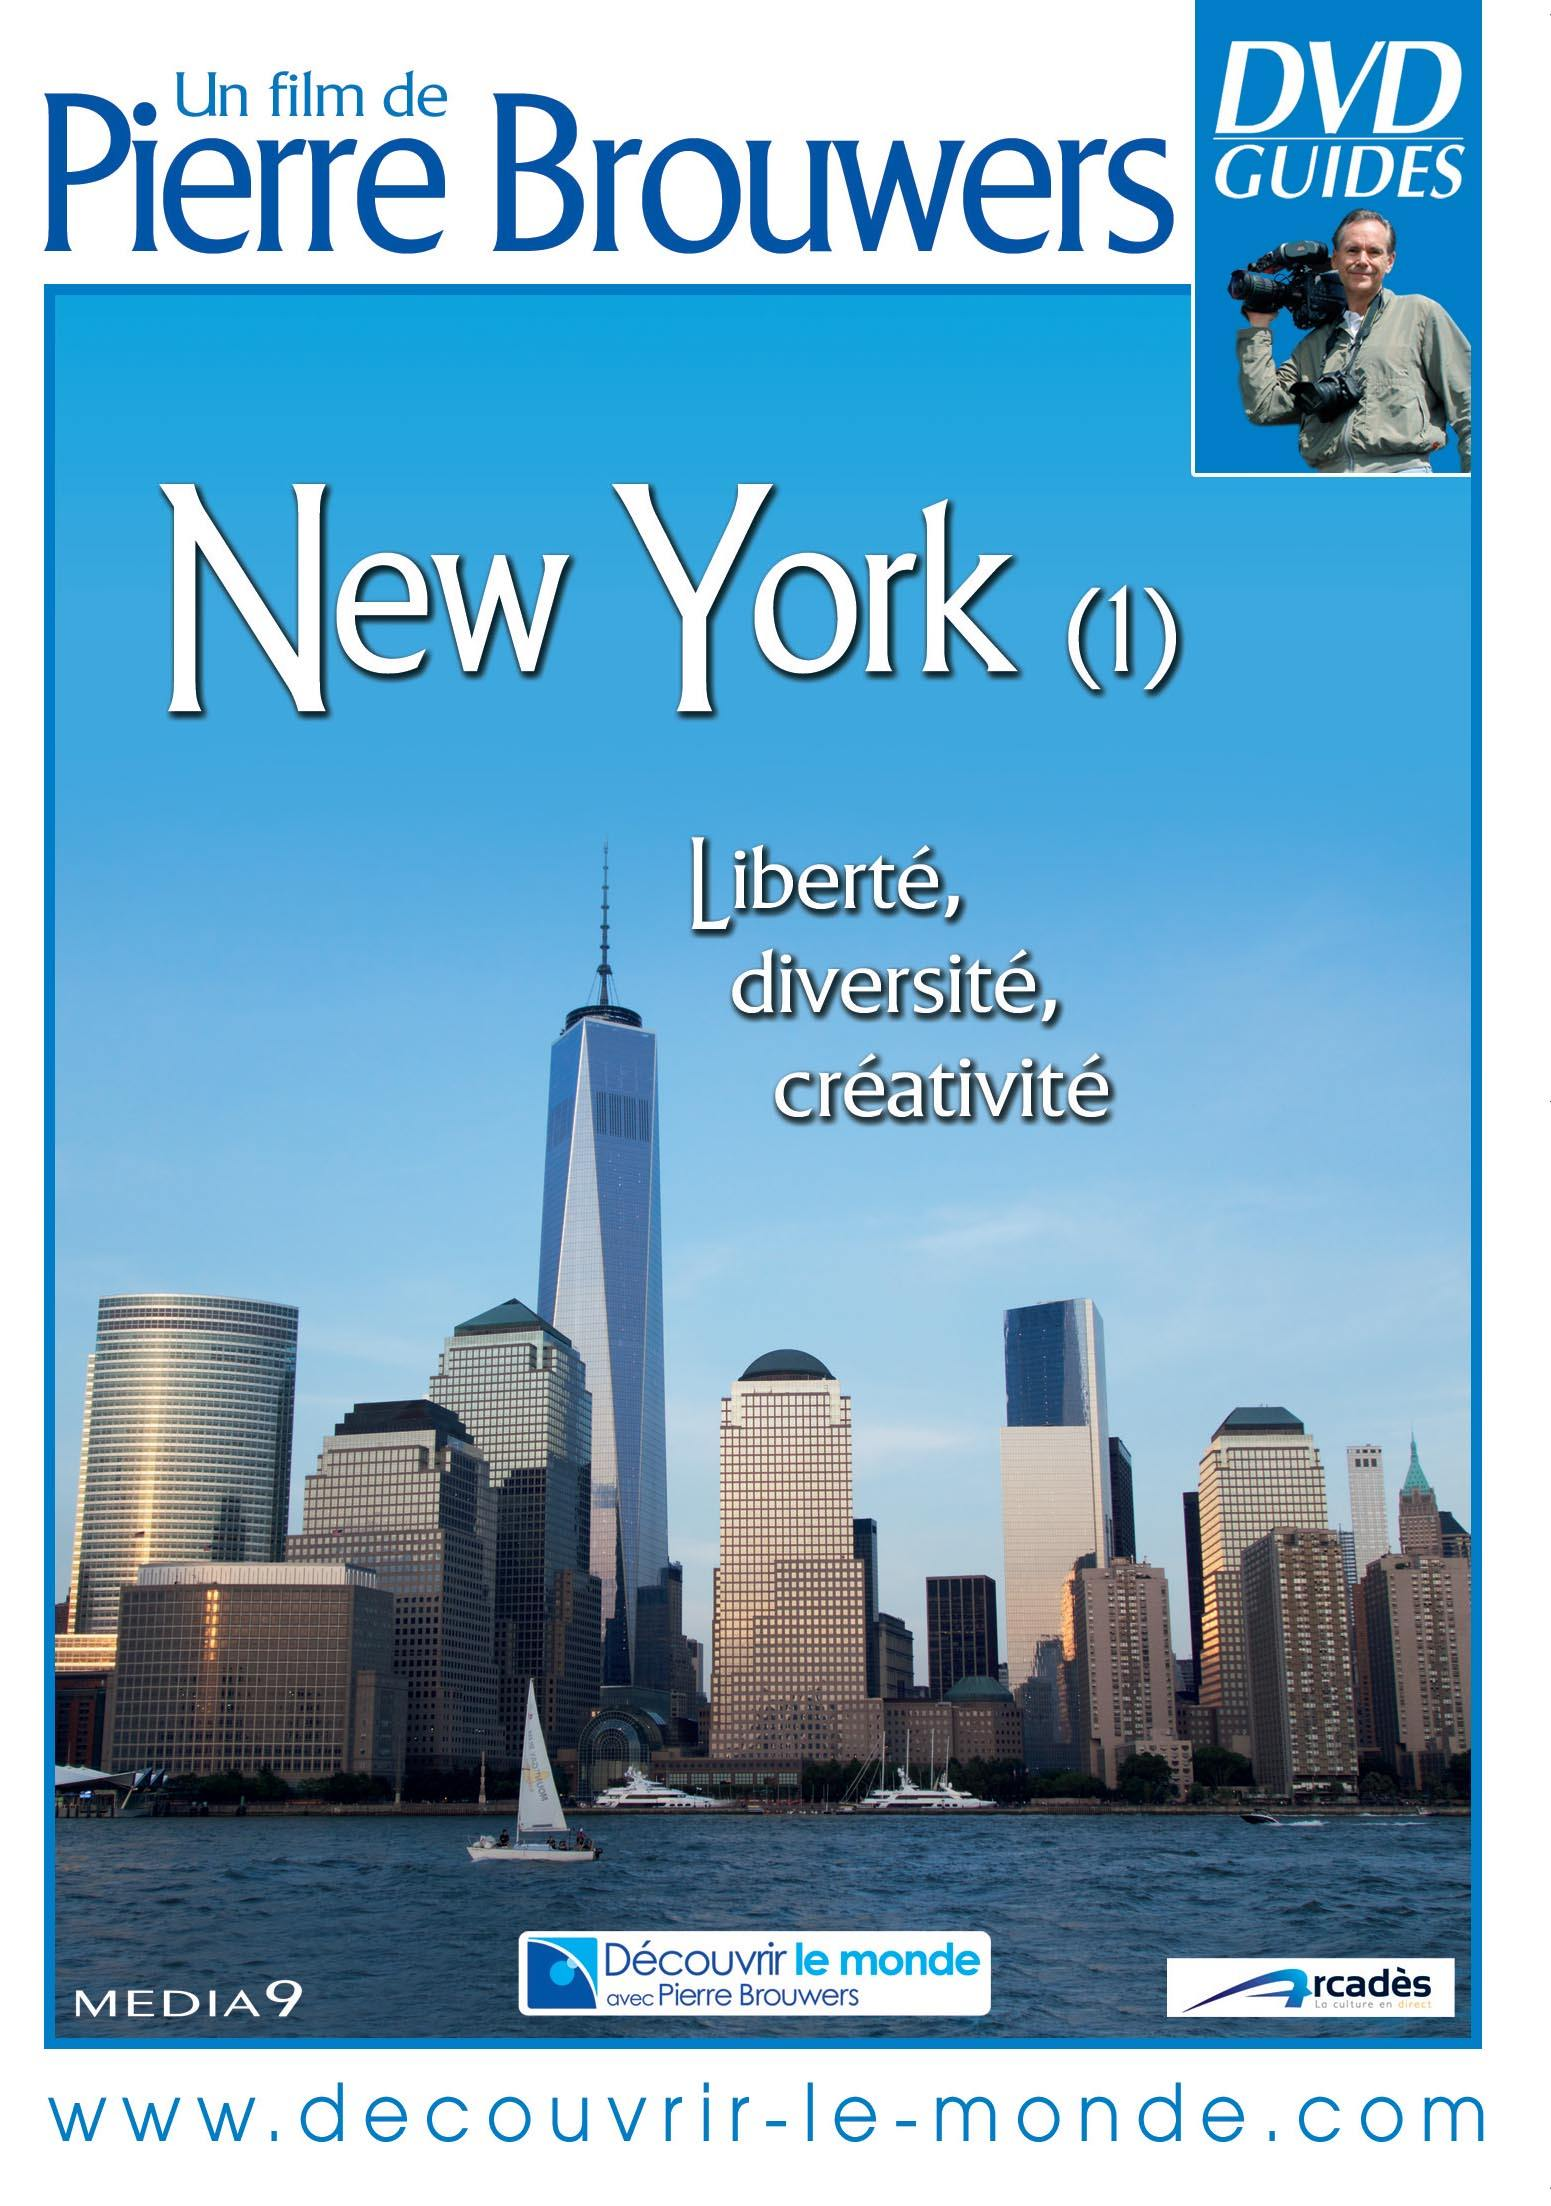 New york part 1 - dvd